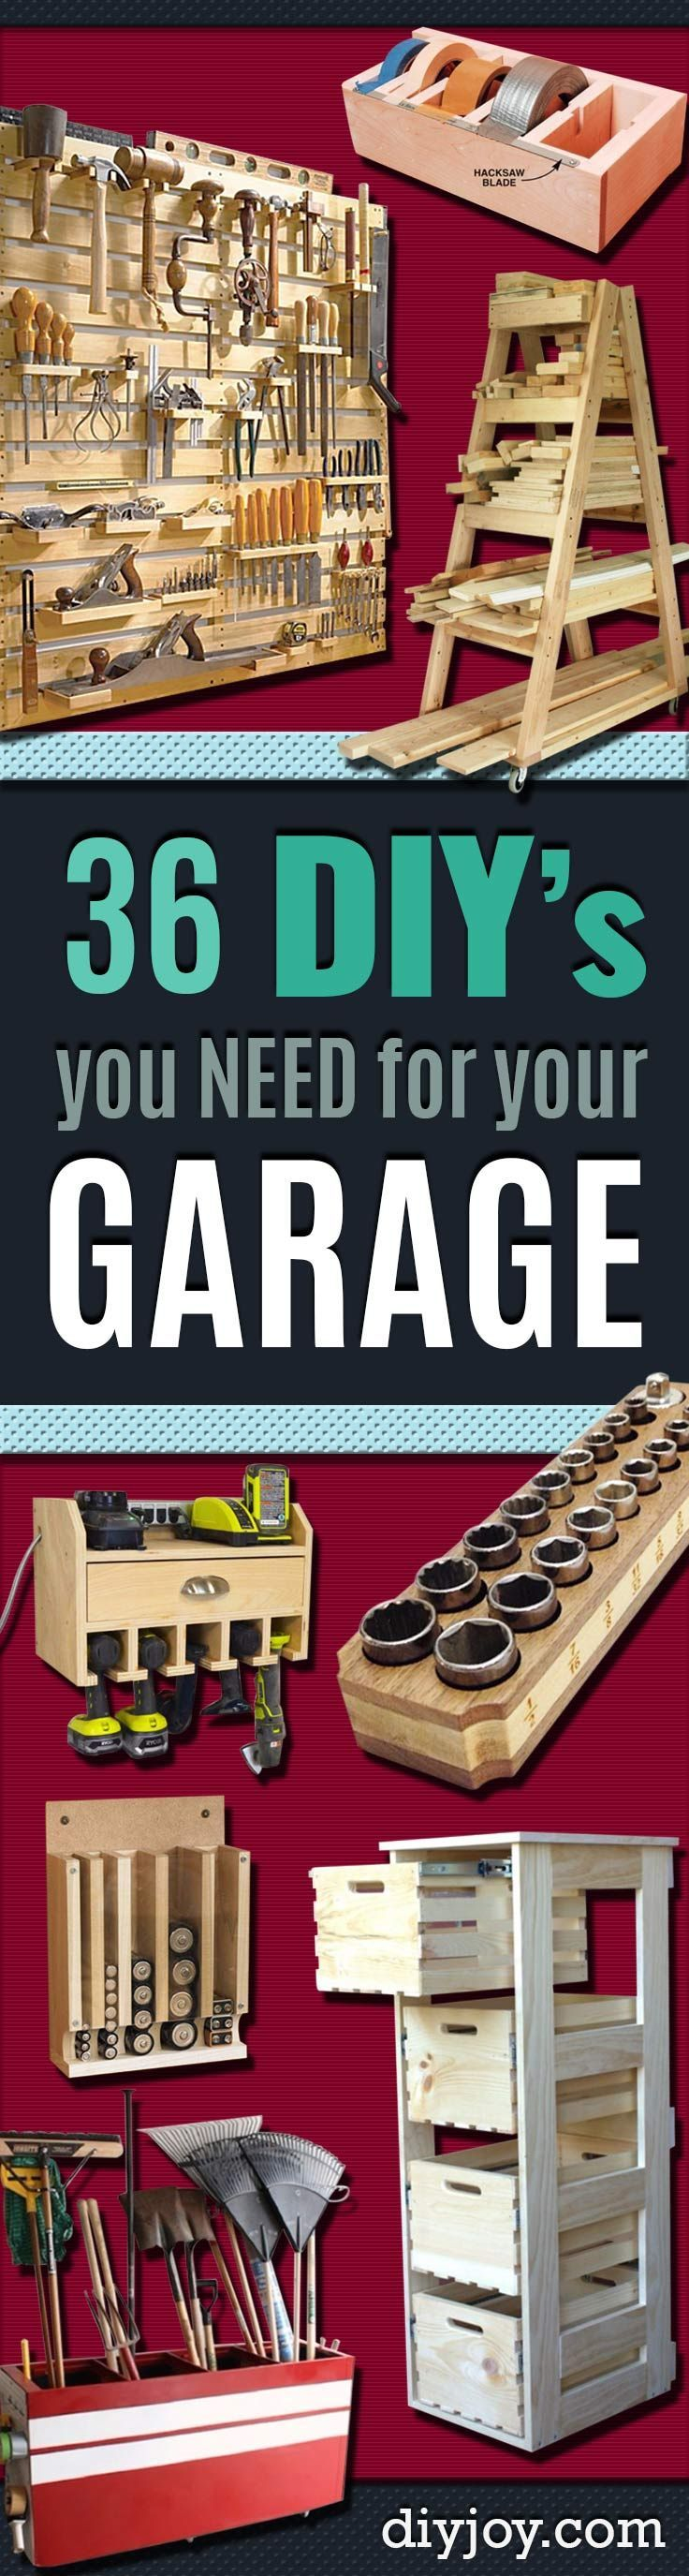 Garage organization tips new home designs the best garage - Best 25 Diy Garage Storage Ideas On Pinterest Tool Organization Garage Tool Organization And Garage Workshop Organization